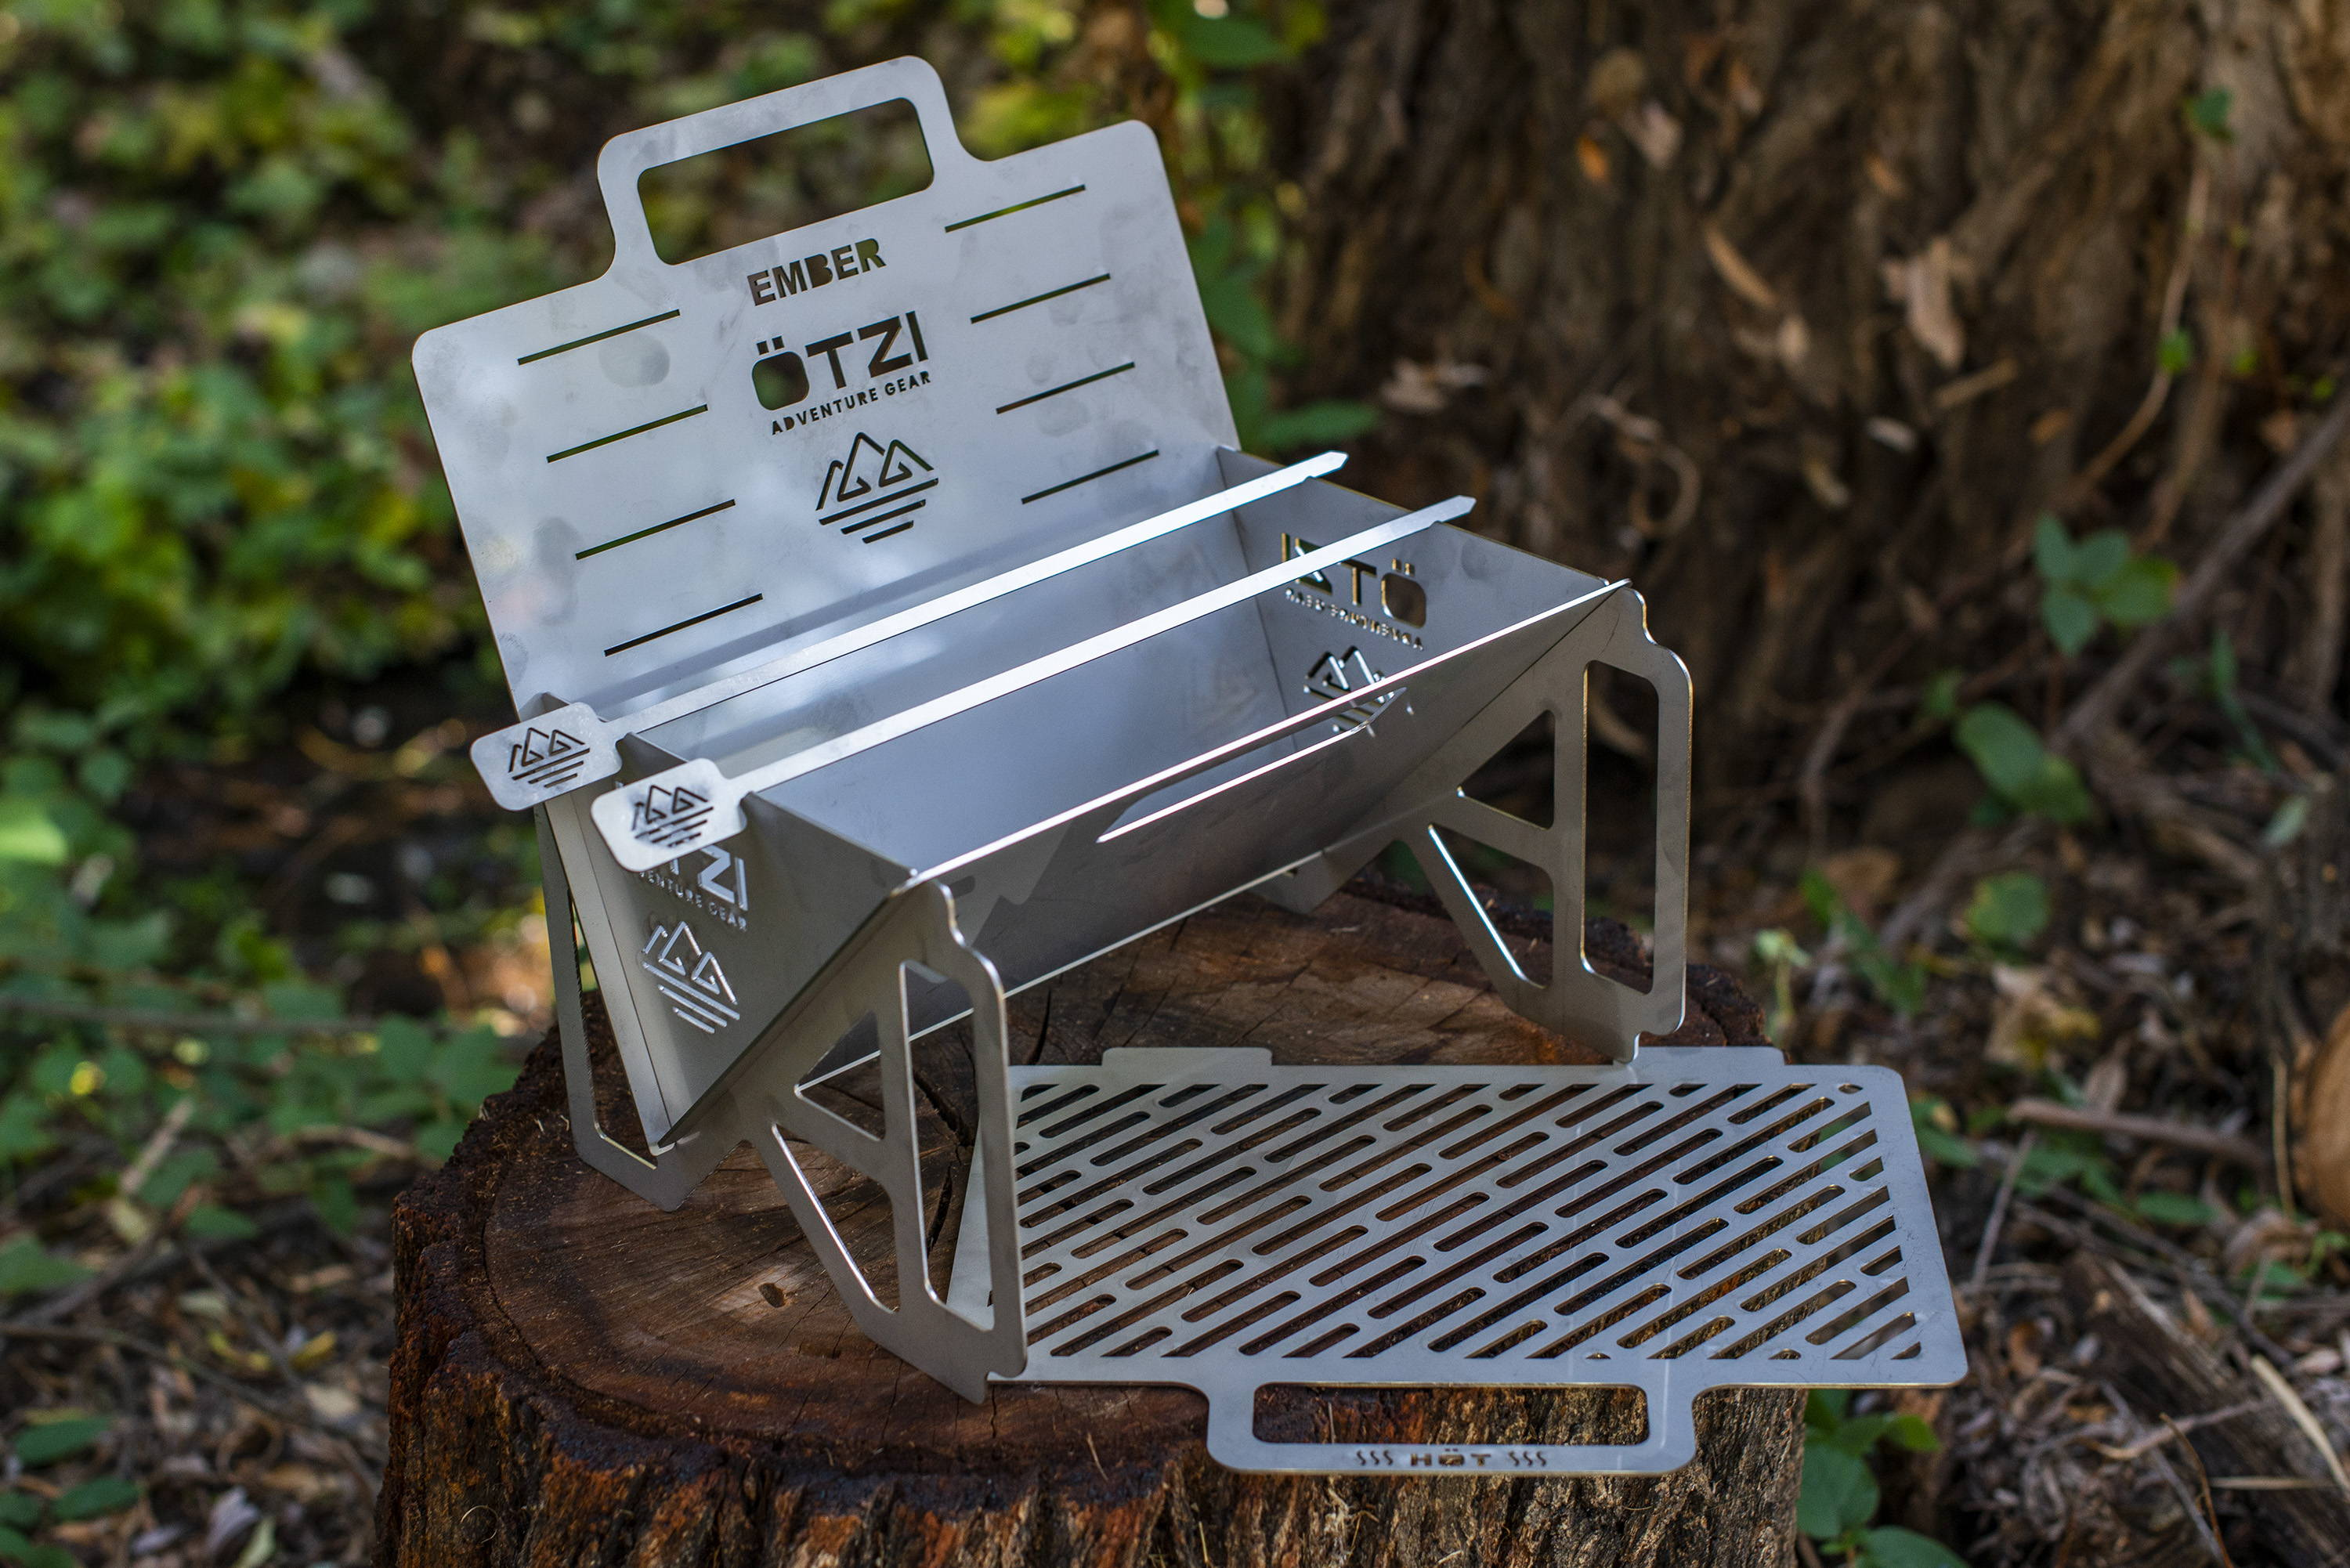 Camping bbq grill, Camping smores, Charcoal grill smoker combo